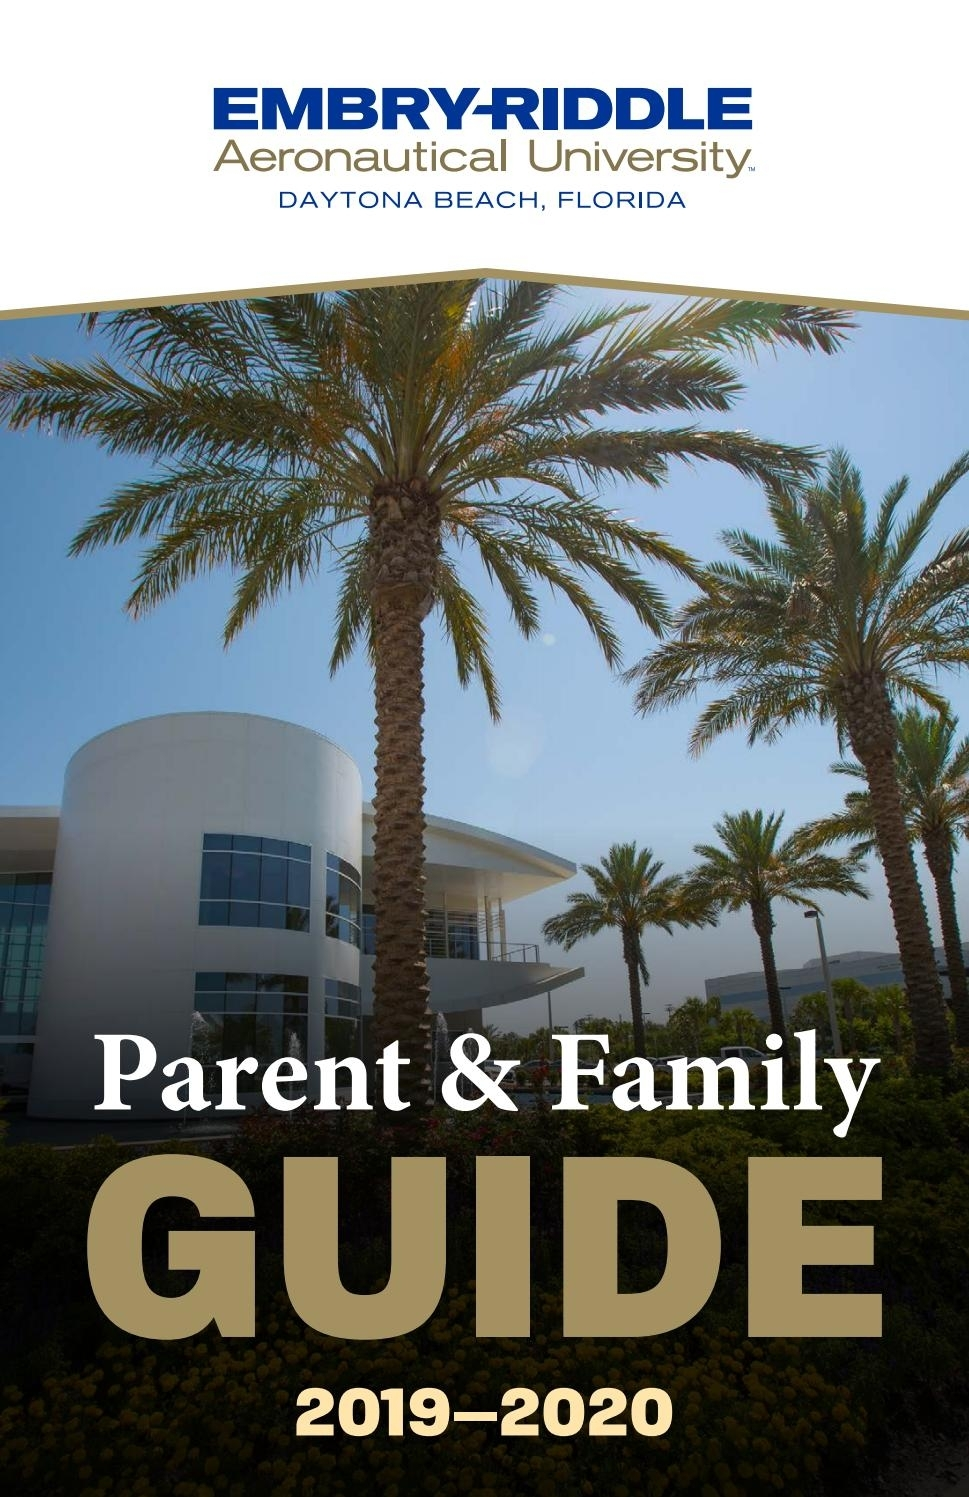 Embry-Riddle Aeronautical University Parent & Family Guide